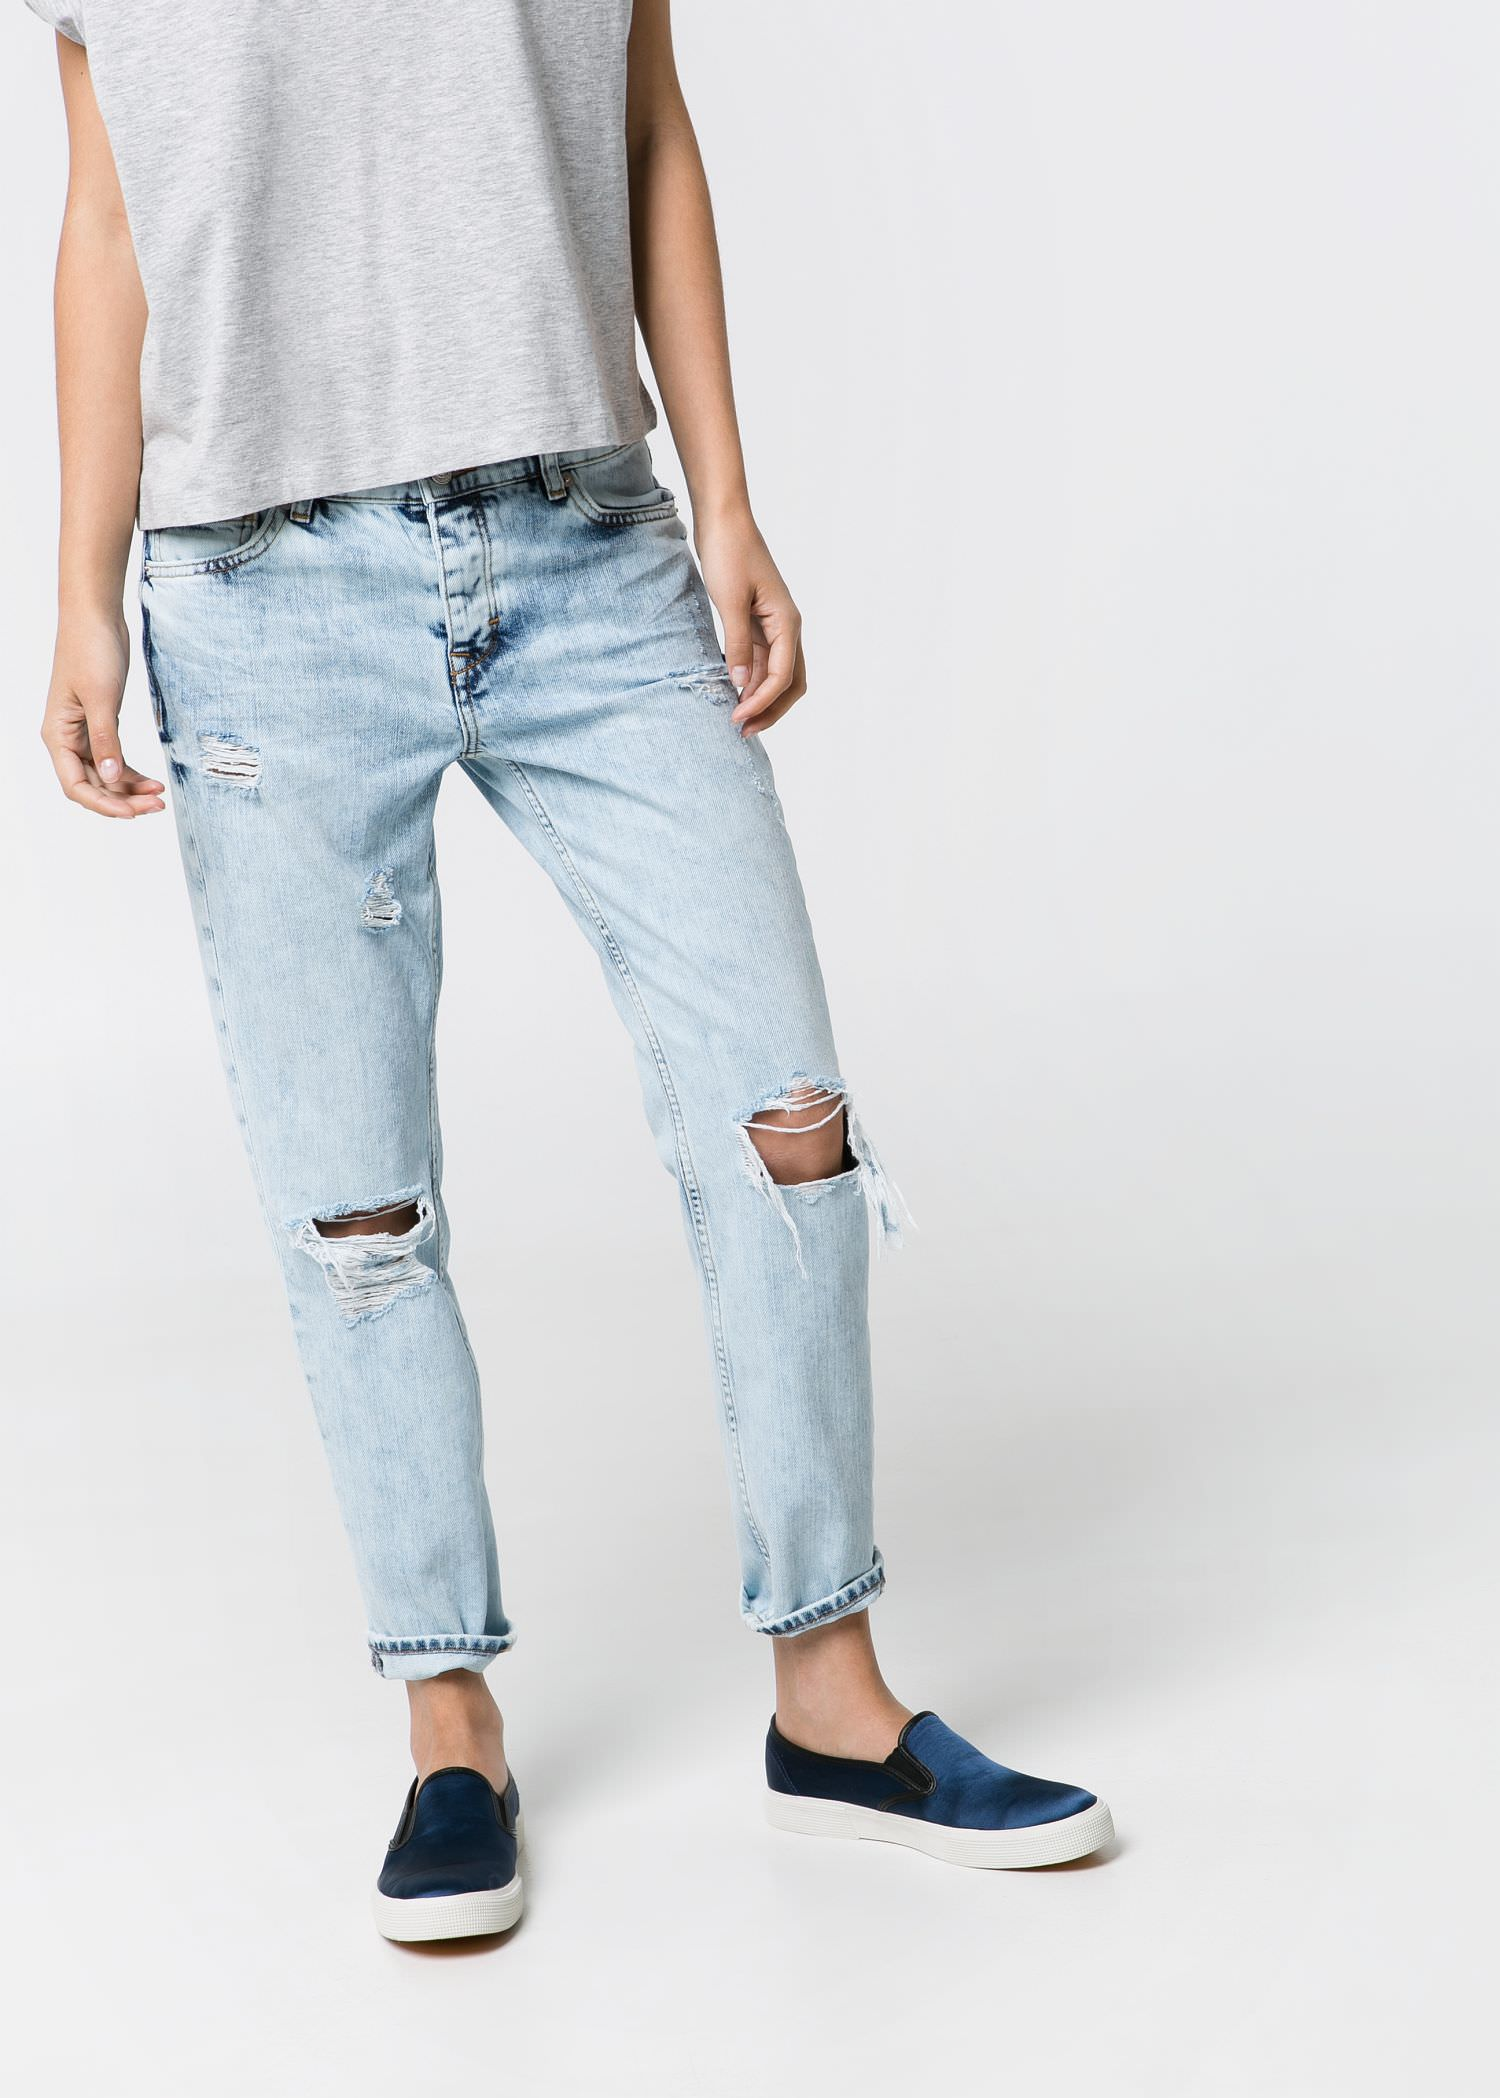 Boyfriend nancy jeans - Jeans for Women | MANGO